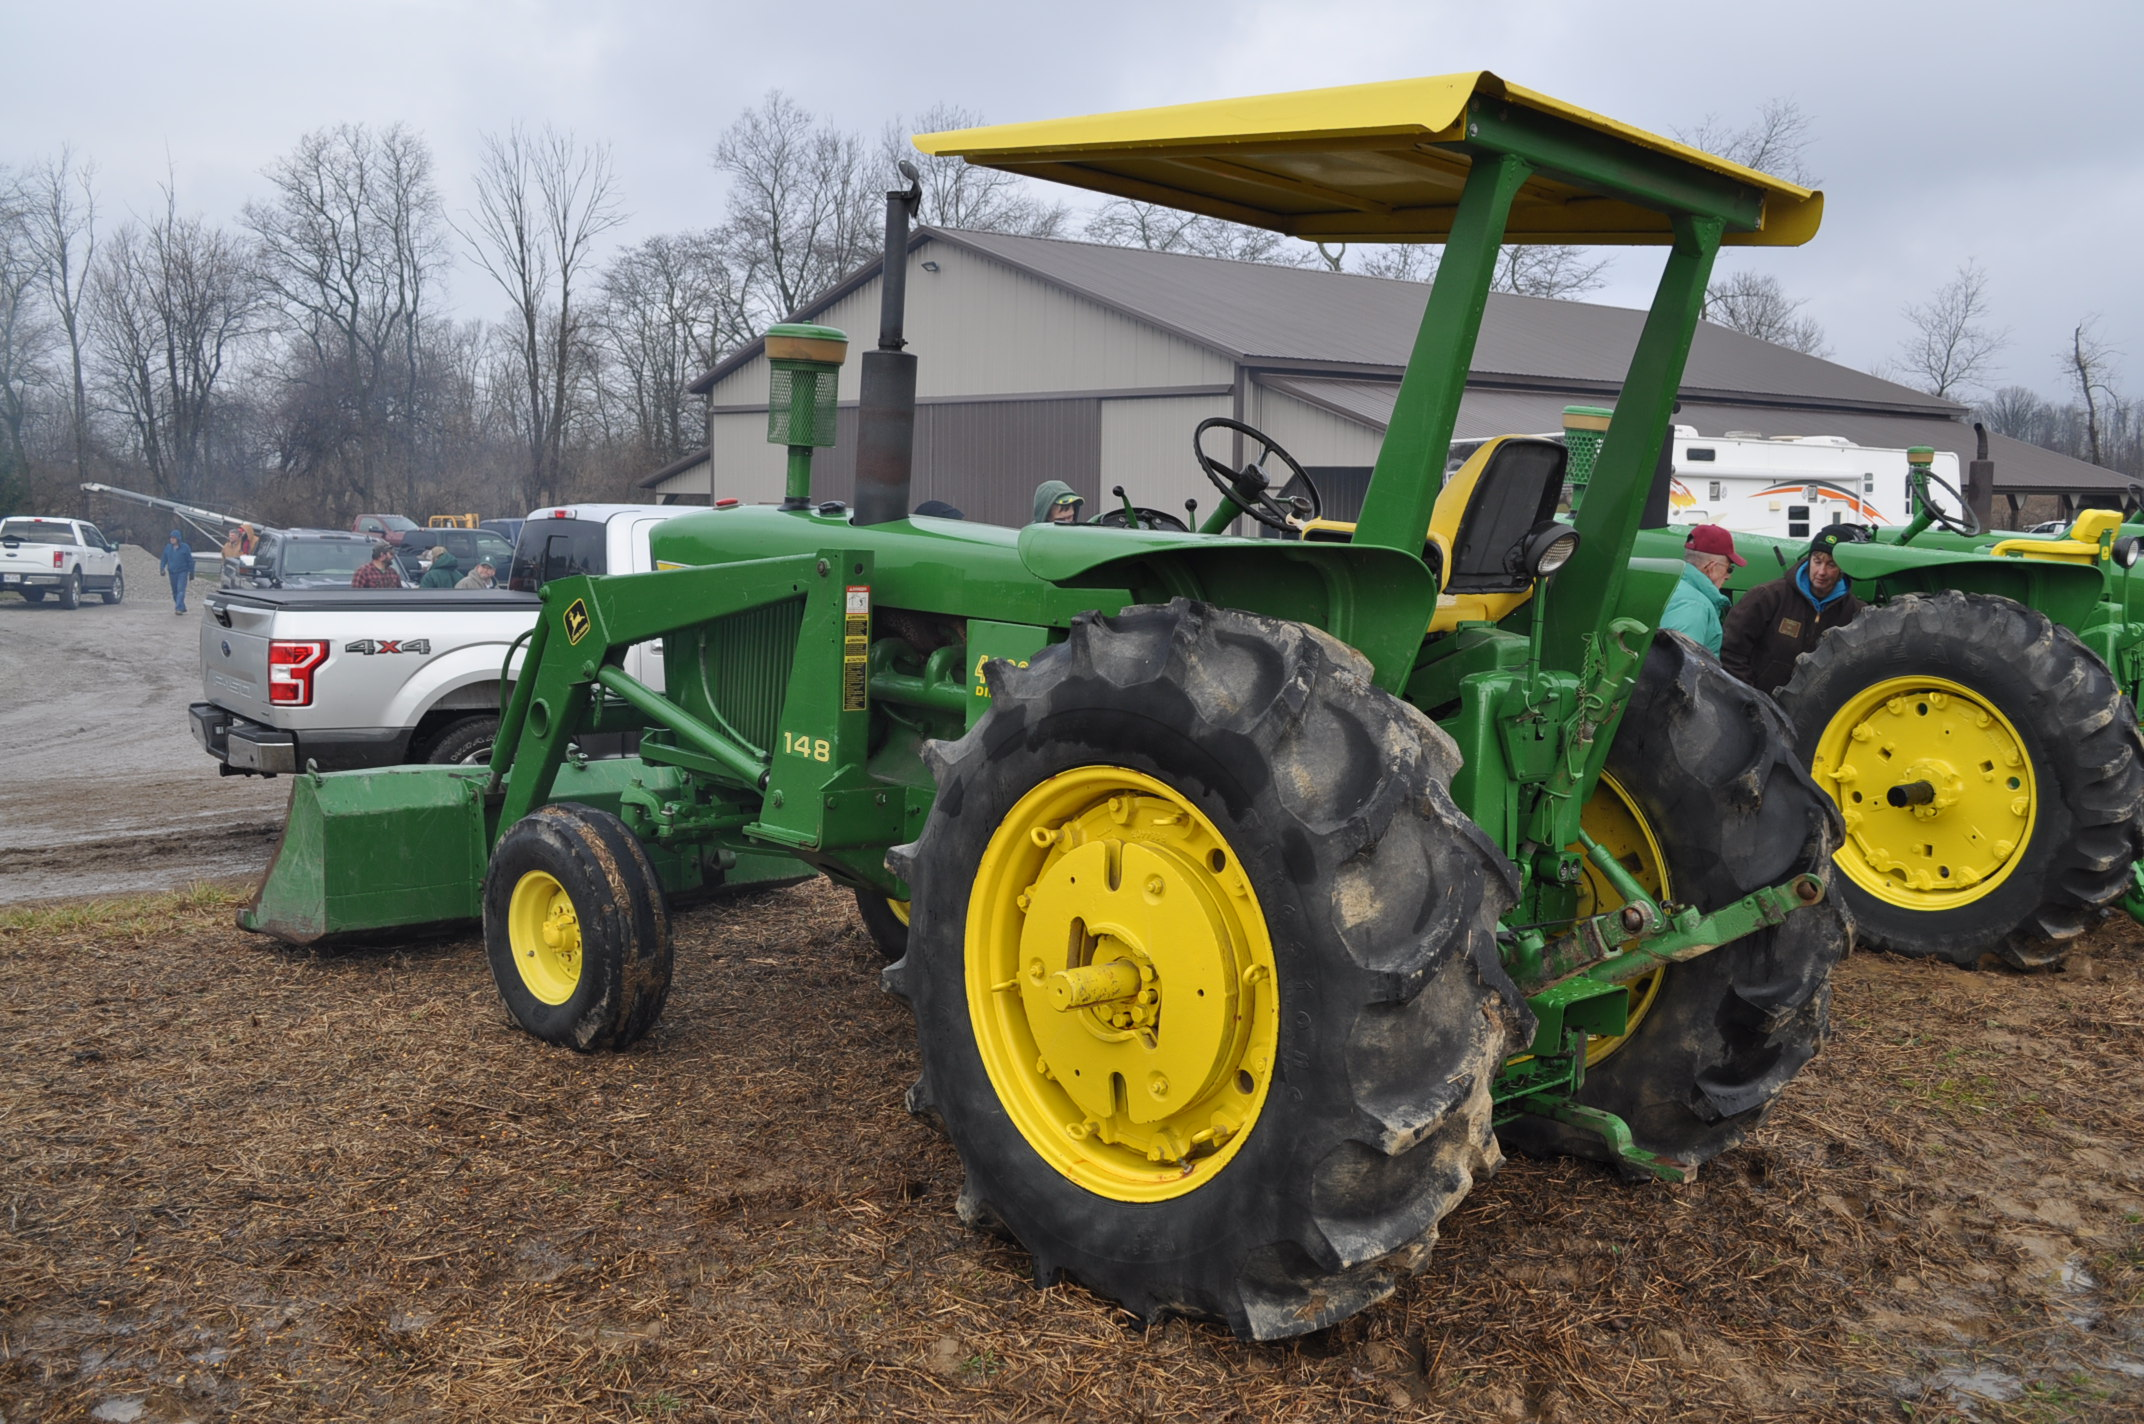 John Deere 4020 tractor, diesel, 18.4-34 tires w/ clamp on dual rims, 11L-15 front, ROPS w/ - Image 2 of 22